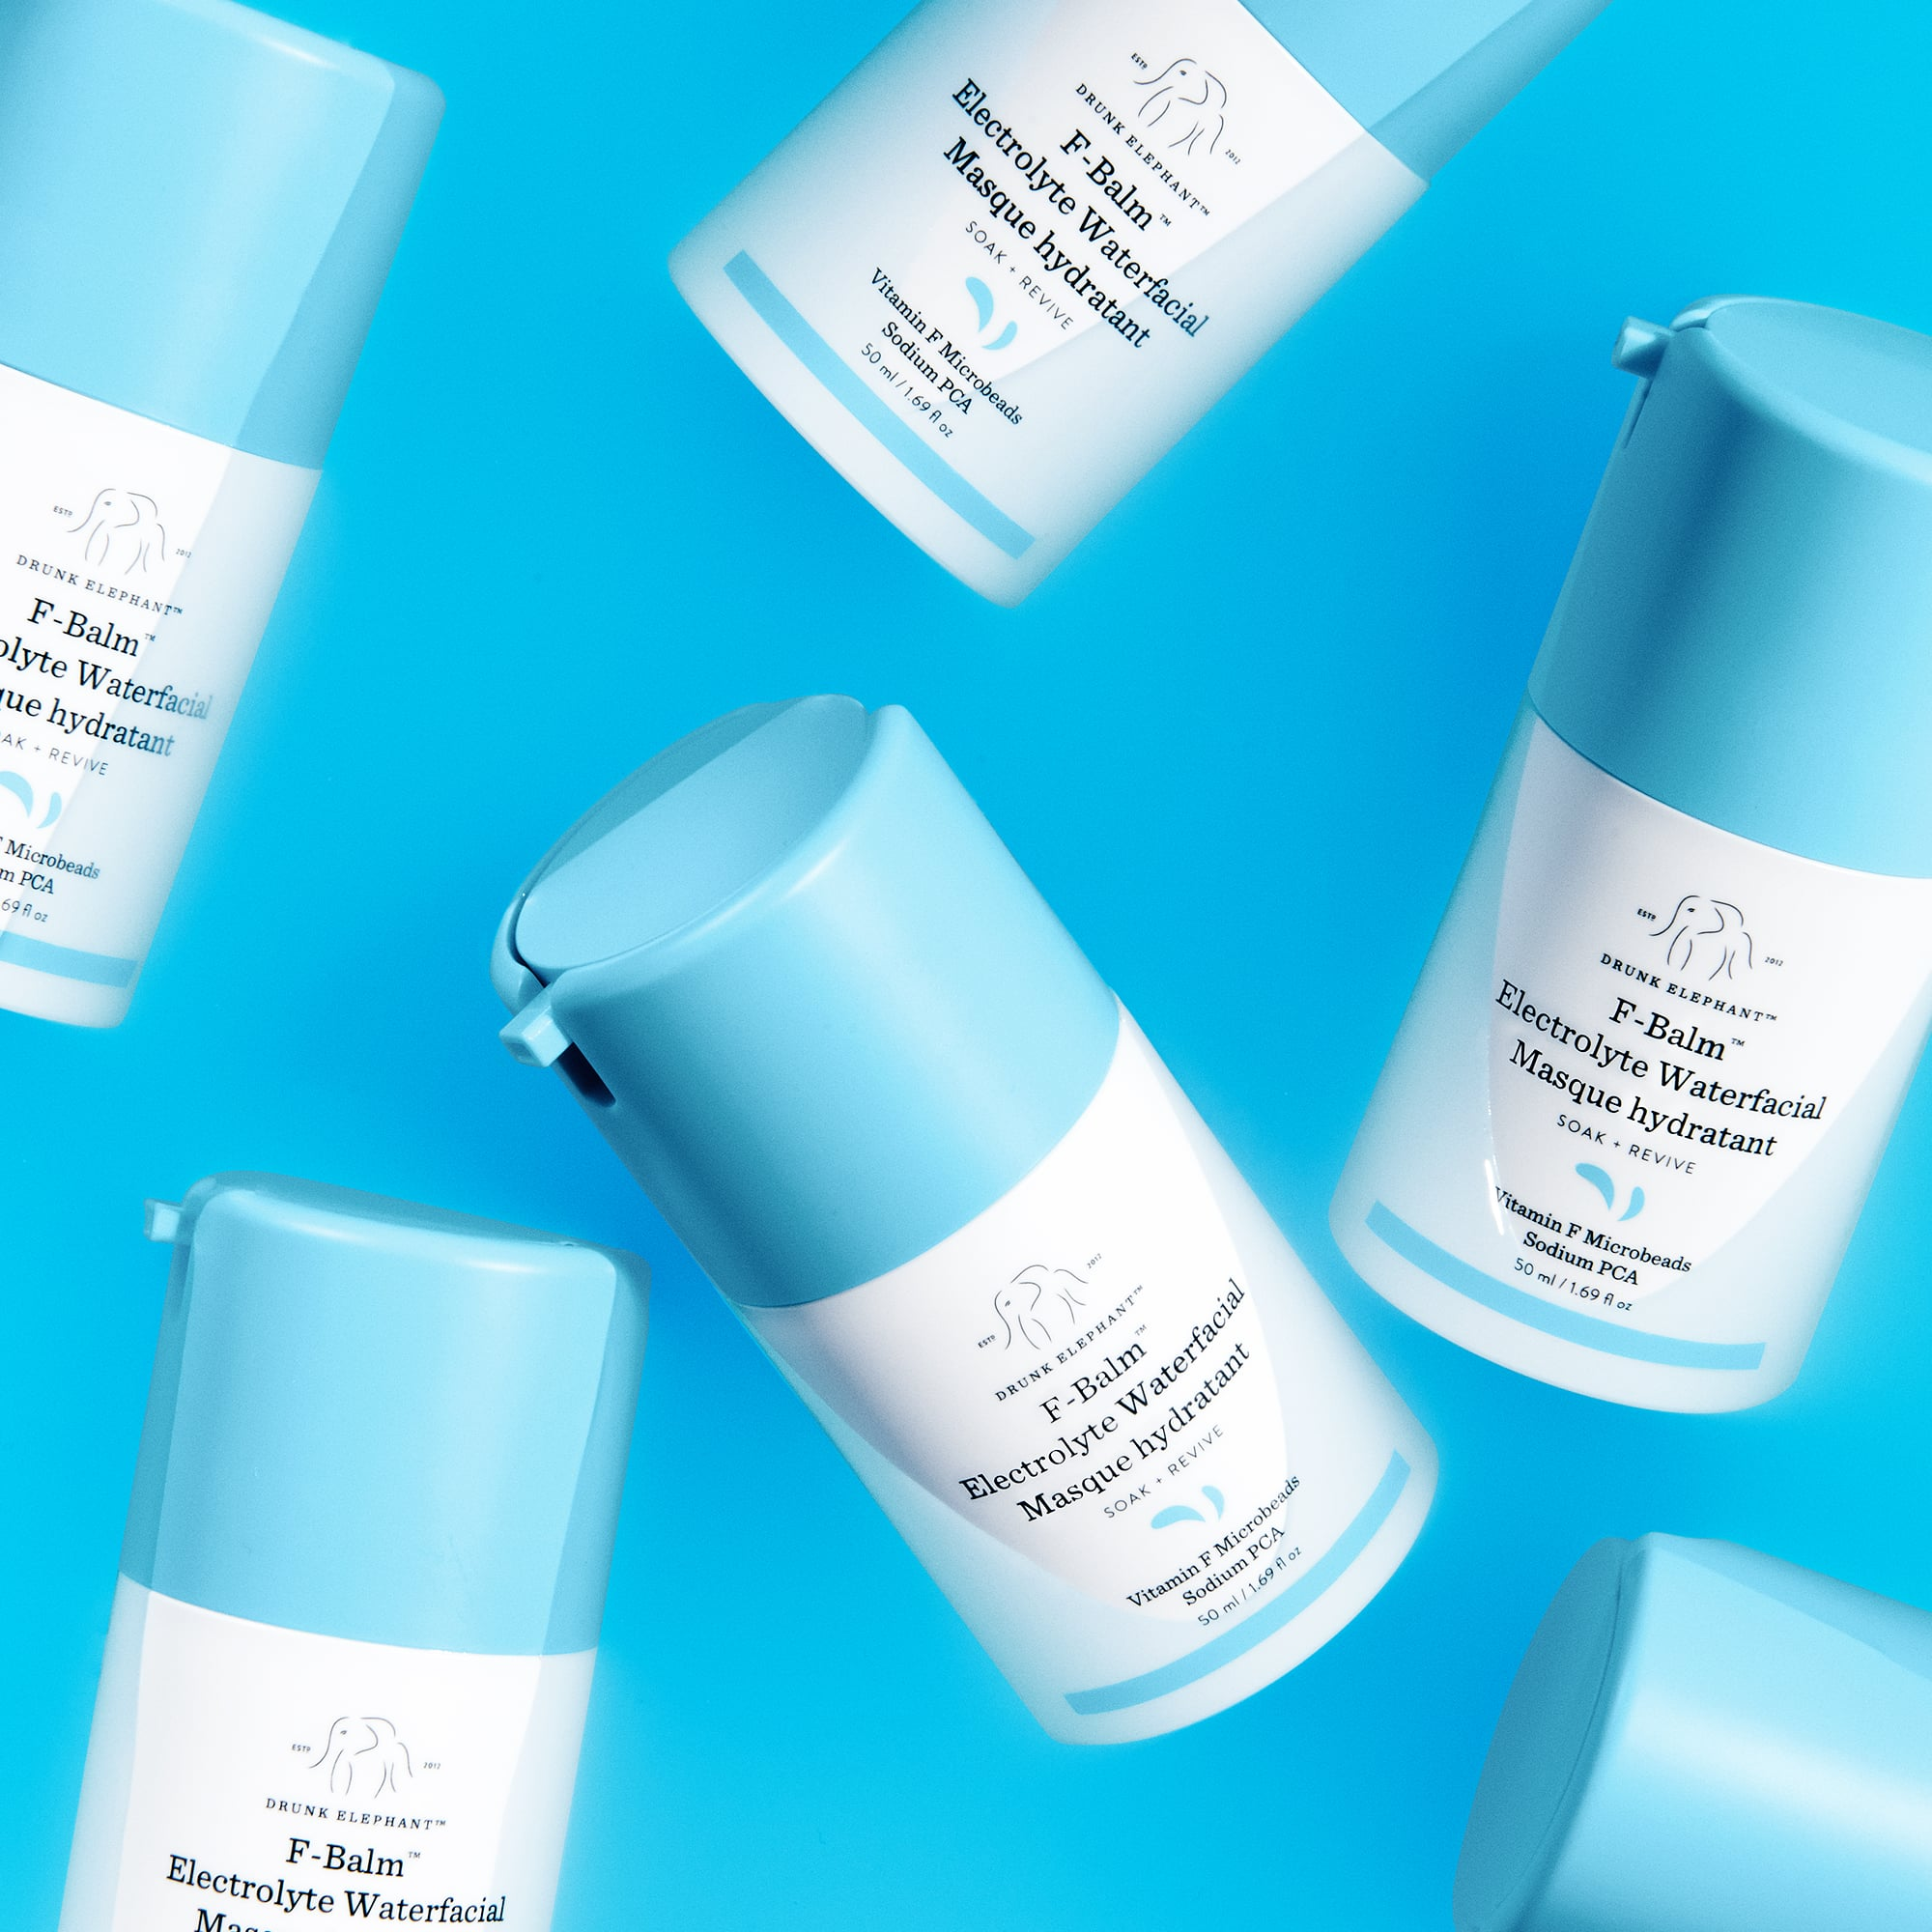 I Tried Drunk Elephant's New Hydrating Mask, and Now the Cold Doesn't Bother Me Anyway